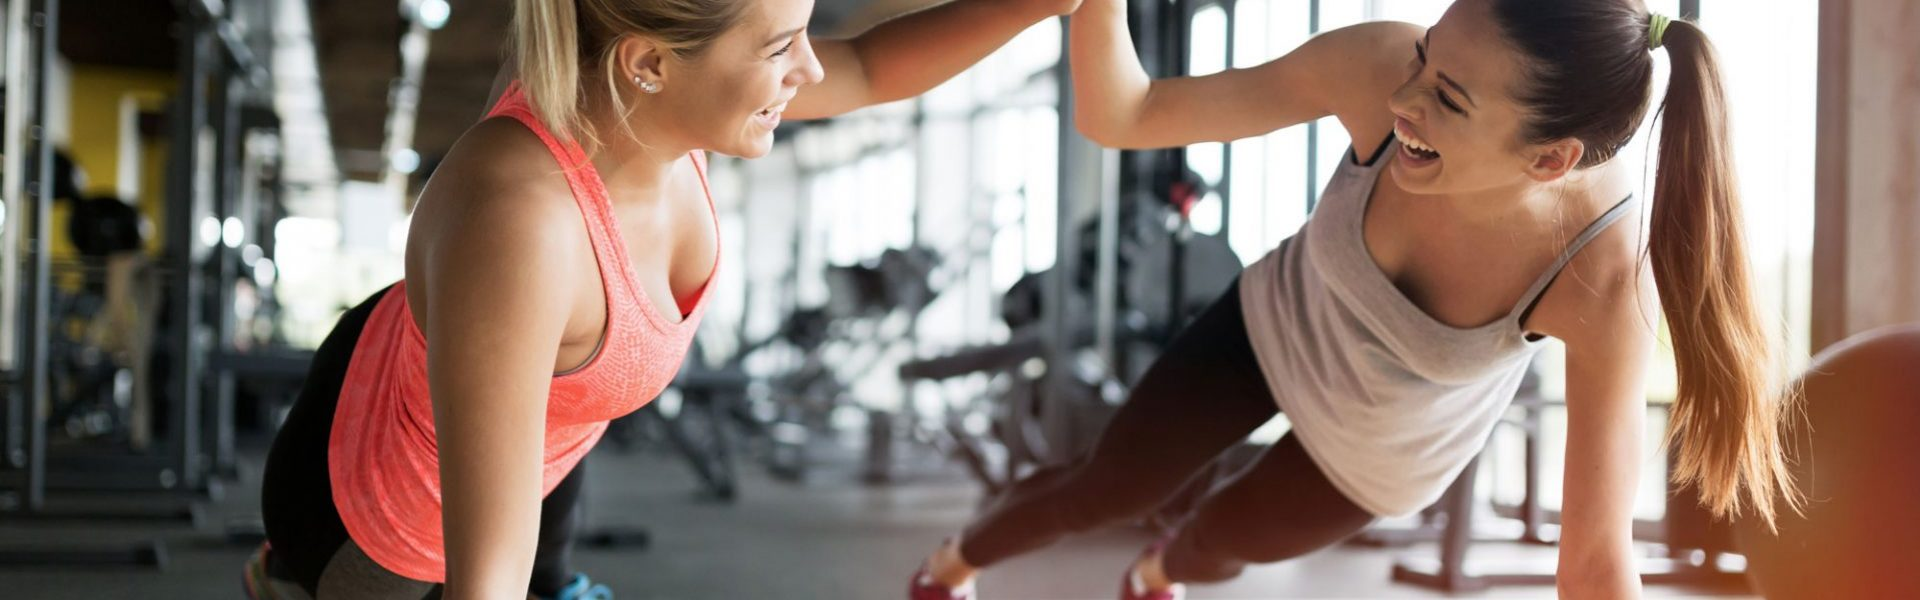 fitness insurance two ladies working out together